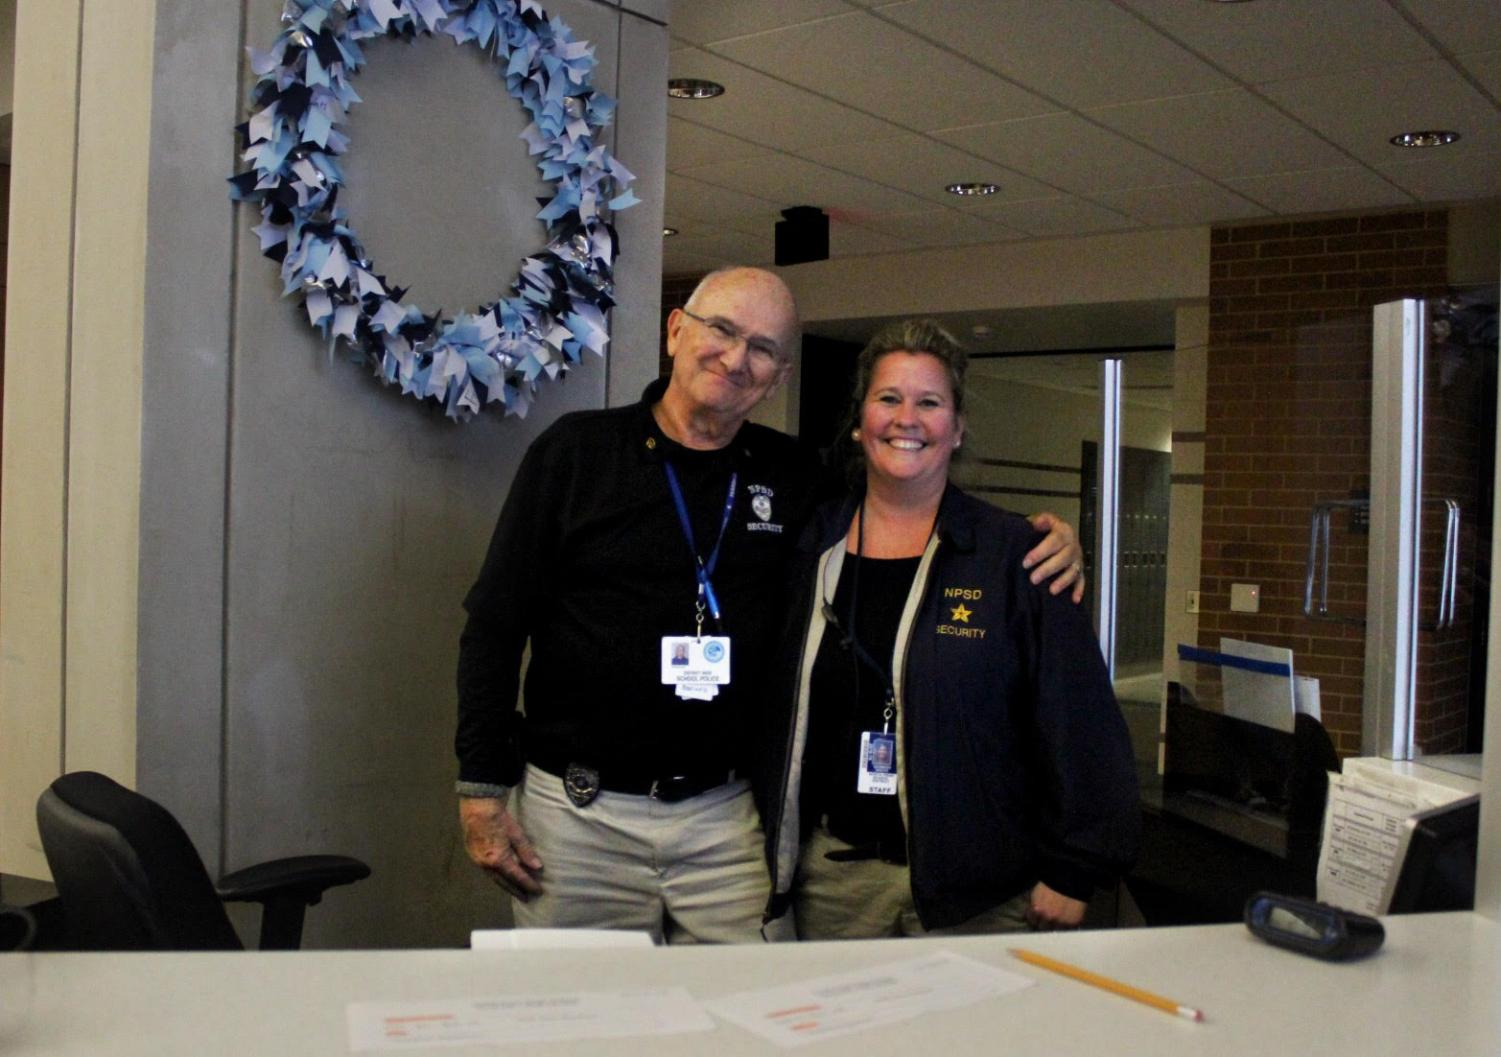 Genneen Groth, new NPHS security guard pauses for a picture with Walt Staheleck at NPHS. Groth joined the NPHS security team in October.